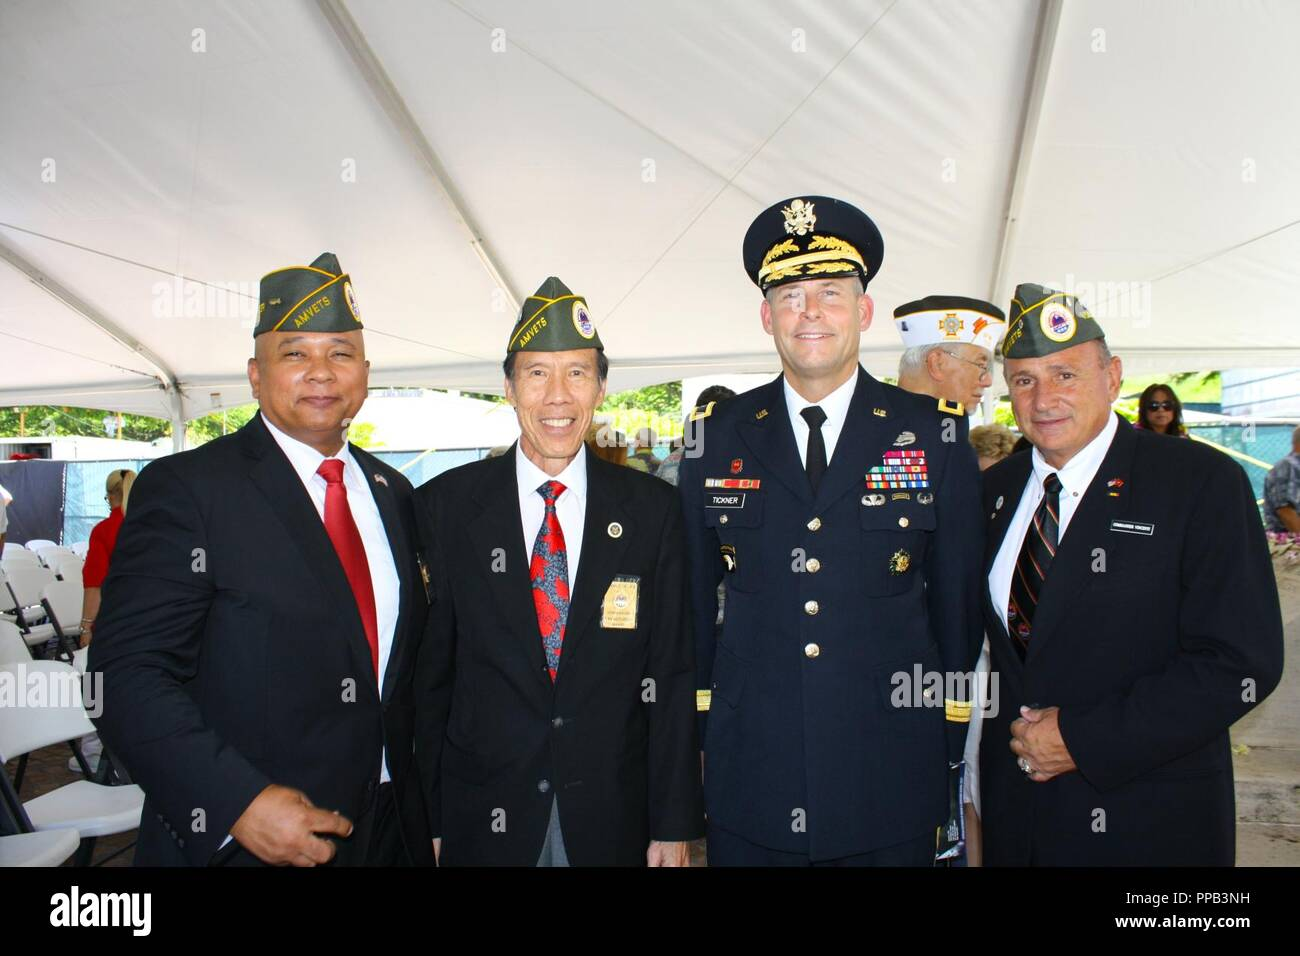 HONOLULU, Hawaii (Aug  15, 2018) – The Commanding General of Pacific